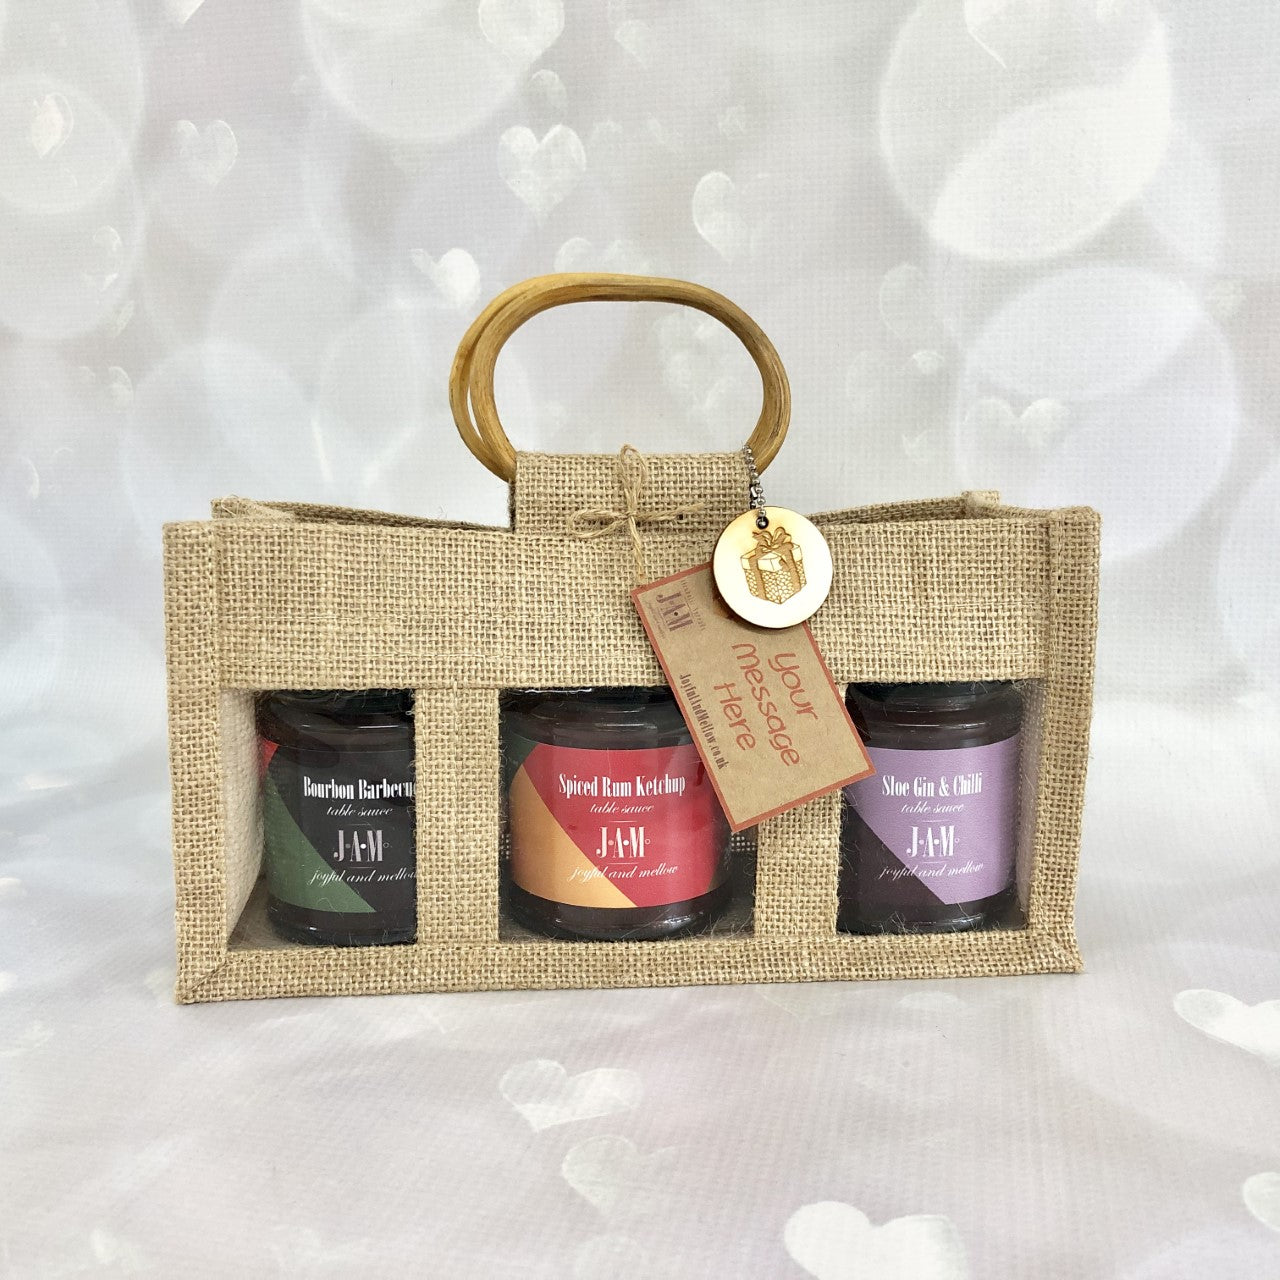 Gift bag of 3 alcoholic sauces, gin and chilli sauce